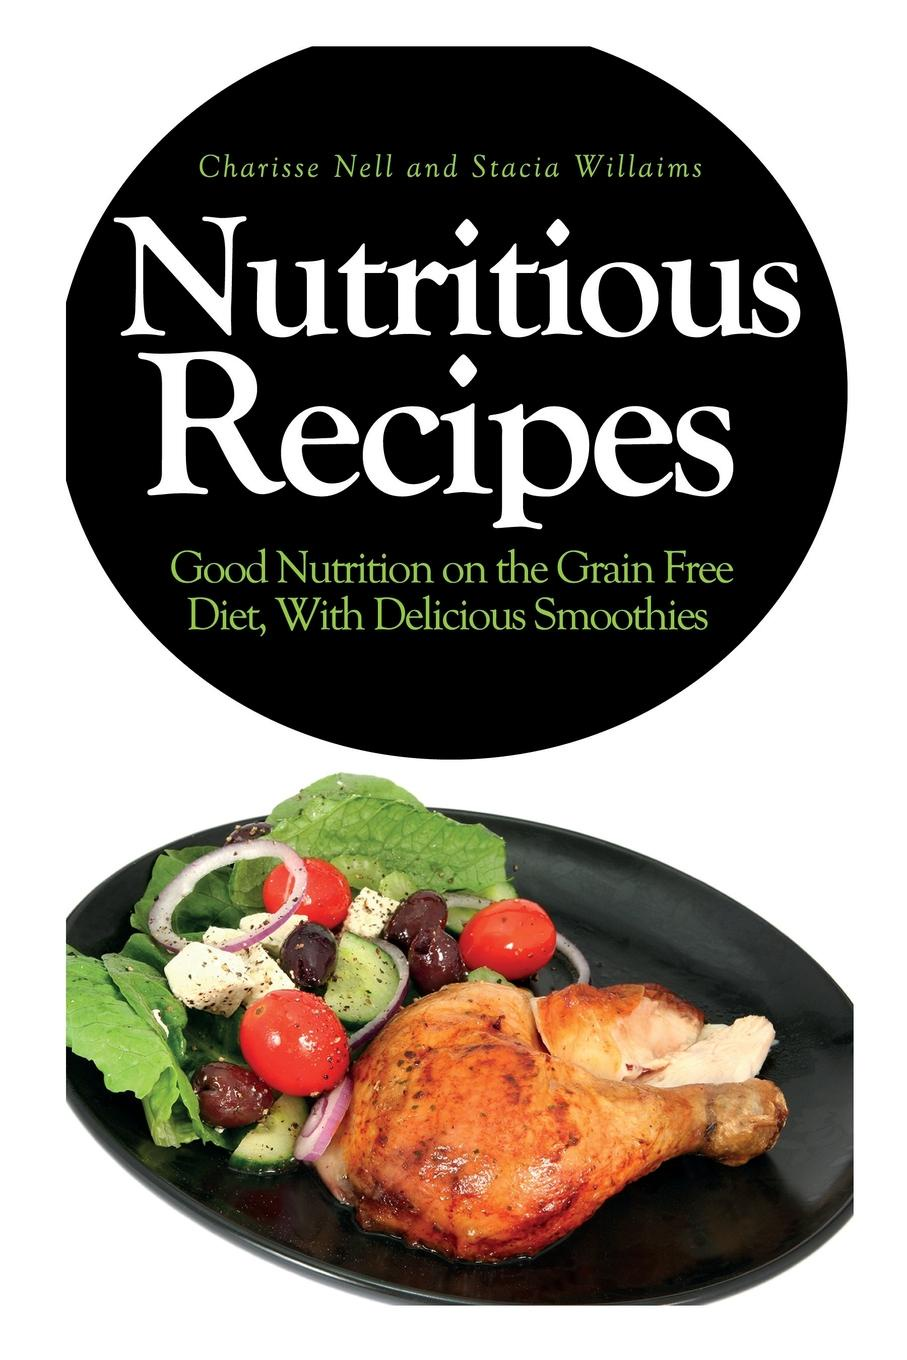 Charisse Nell, Willaims Stacia Nutritious Recipes. Good Nutrition on the Grain Free Diet, with Delicious Smoothies maurie markman cancer nutrition and recipes for dummies isbn 9781118592199